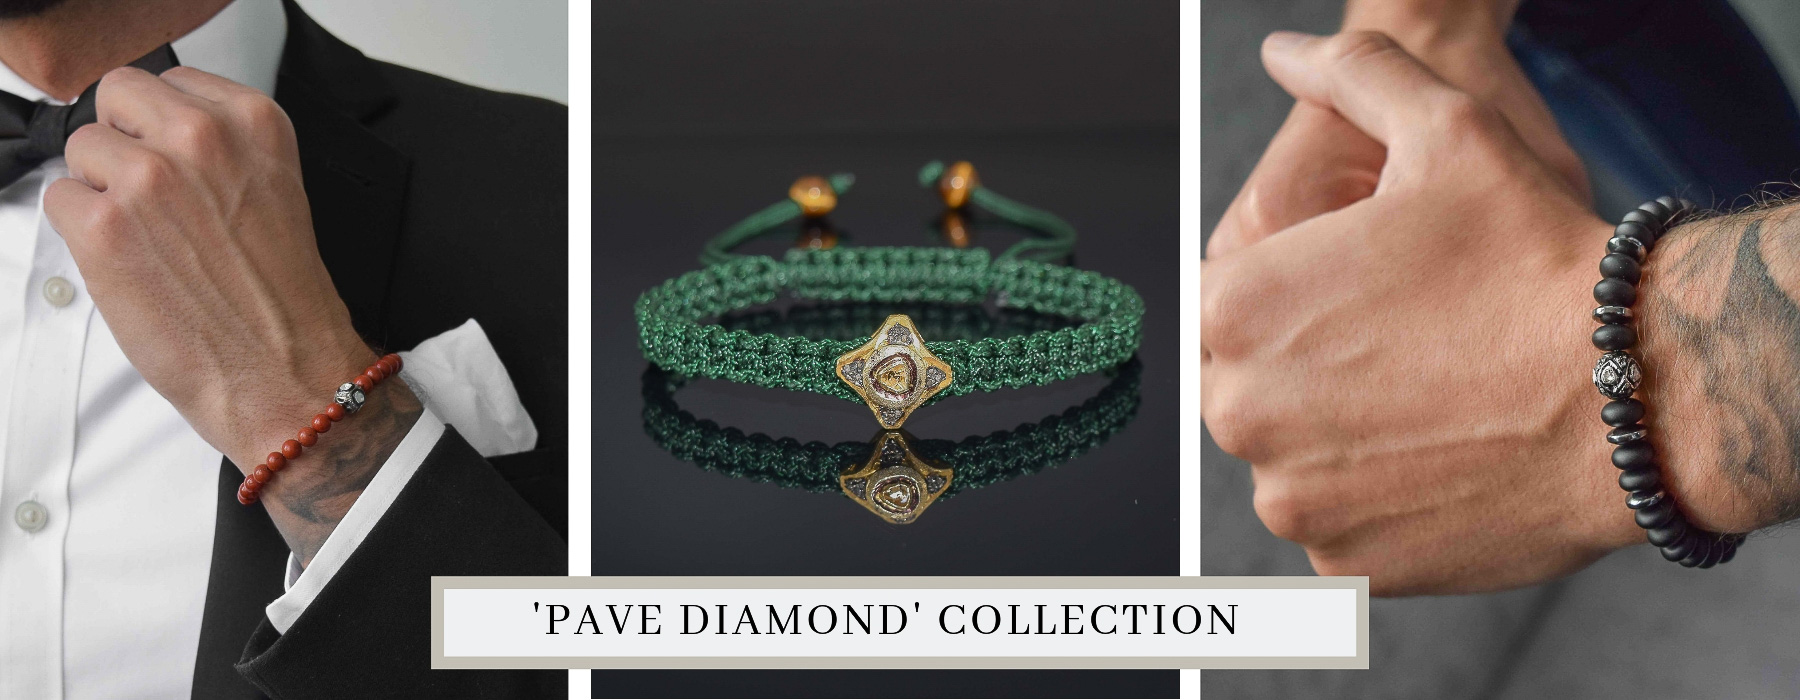 Crystal Jewellery for Women, luxury jewellery for men